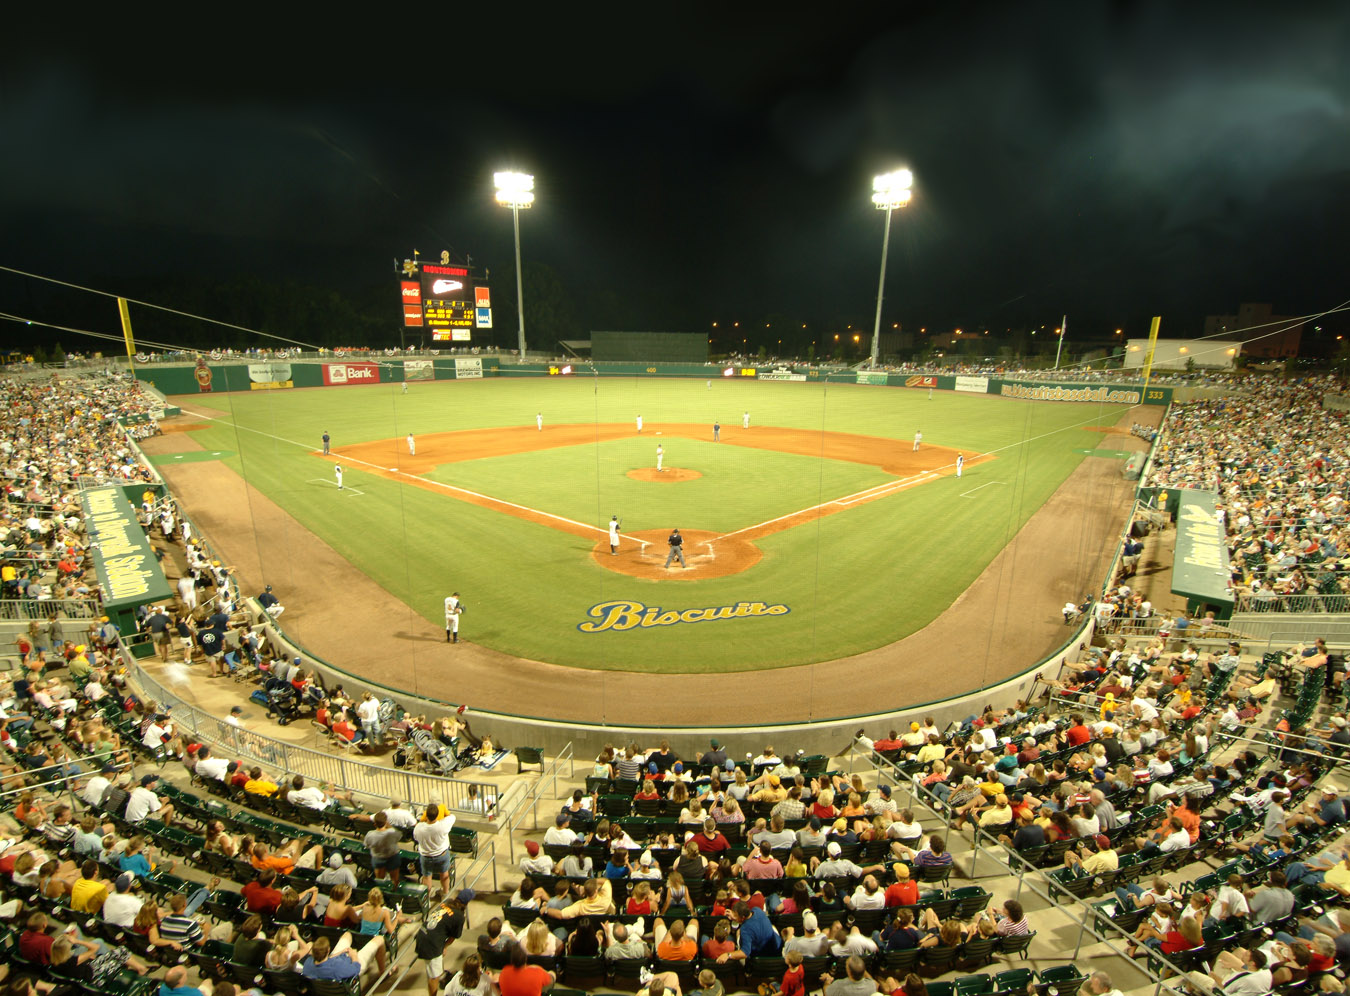 Biscuits Stadium | Alabama Tourist Attractions | Montgomery Alabama